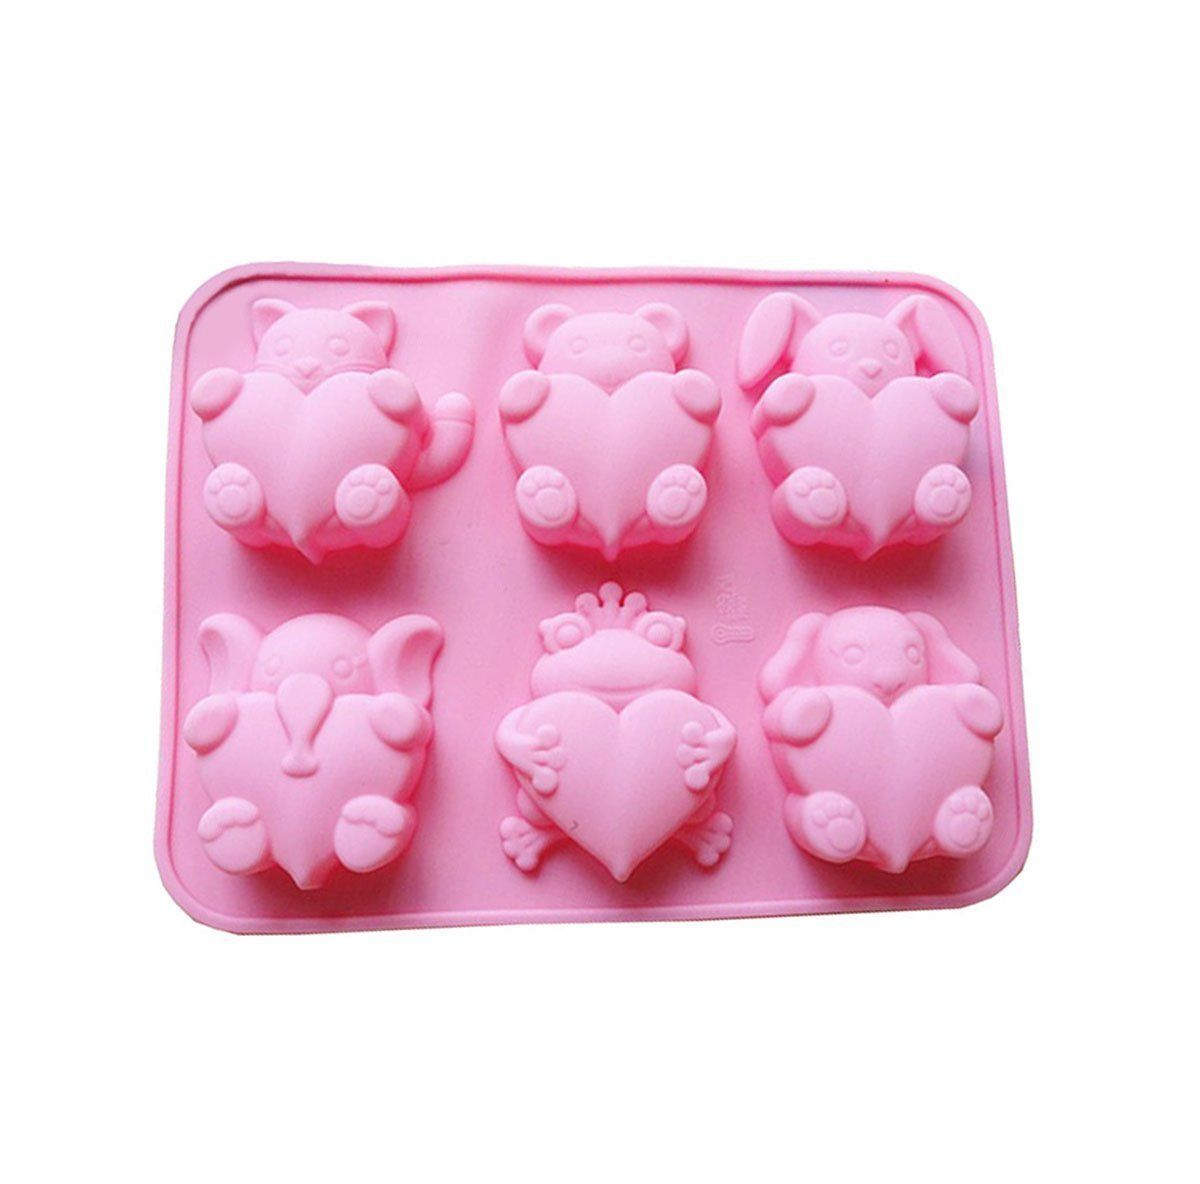 Silicone Molds Soap Molds 6 Cavity Heart Silicone Molds Baking Mold Silicone Cake Mold Ice Cube Tray Chocolate Mold Cake Mold Muffine Silicone Mold,Set of 2